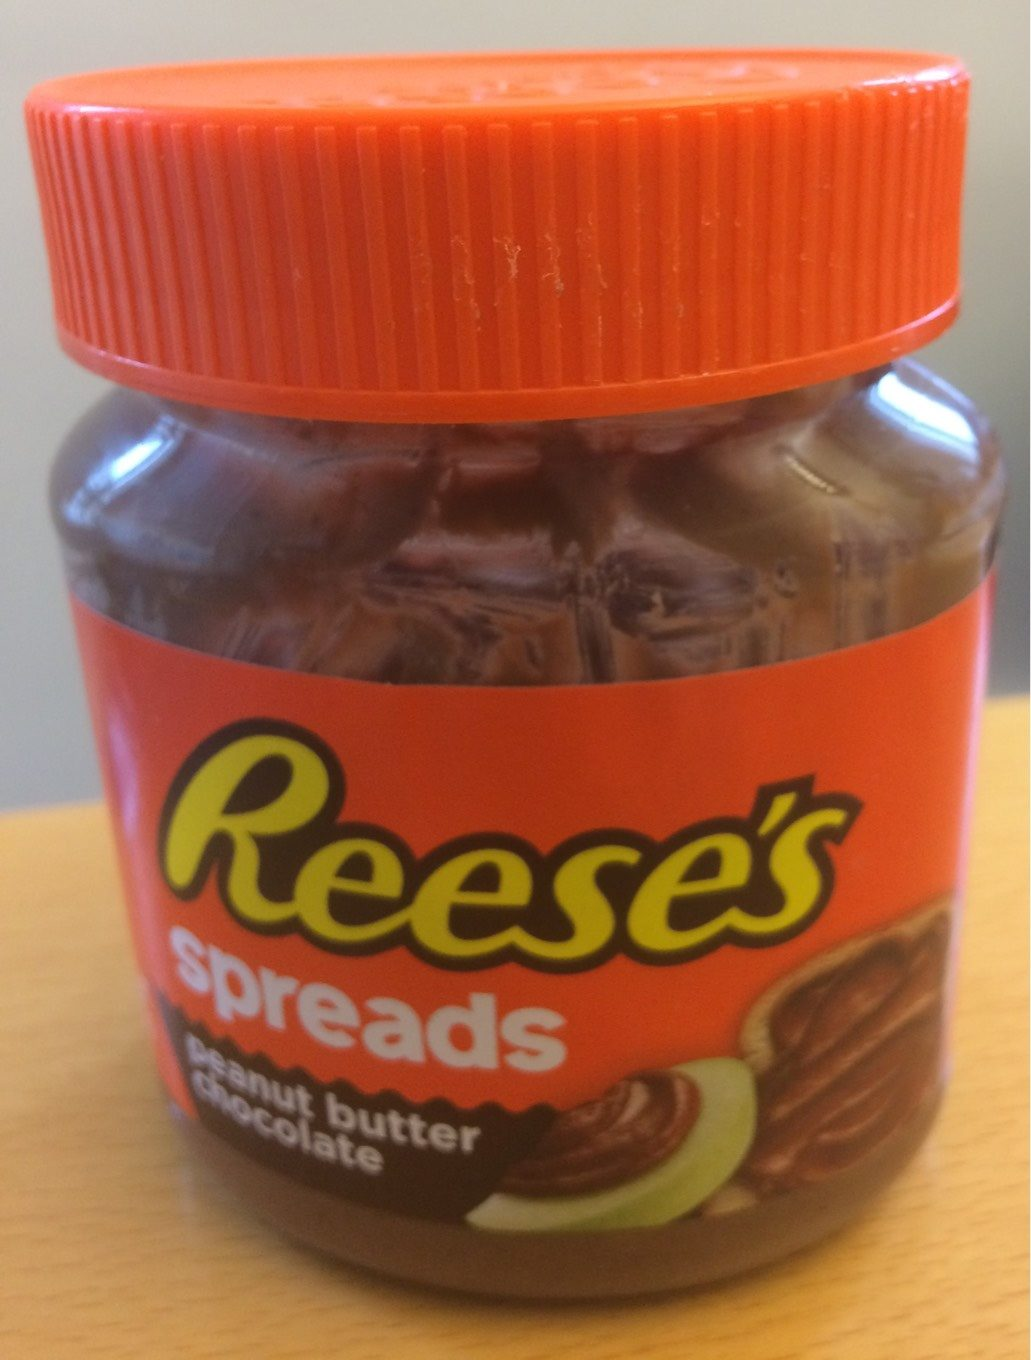 Reese's Spreads Peanut Butter Chocolate - Product - fr